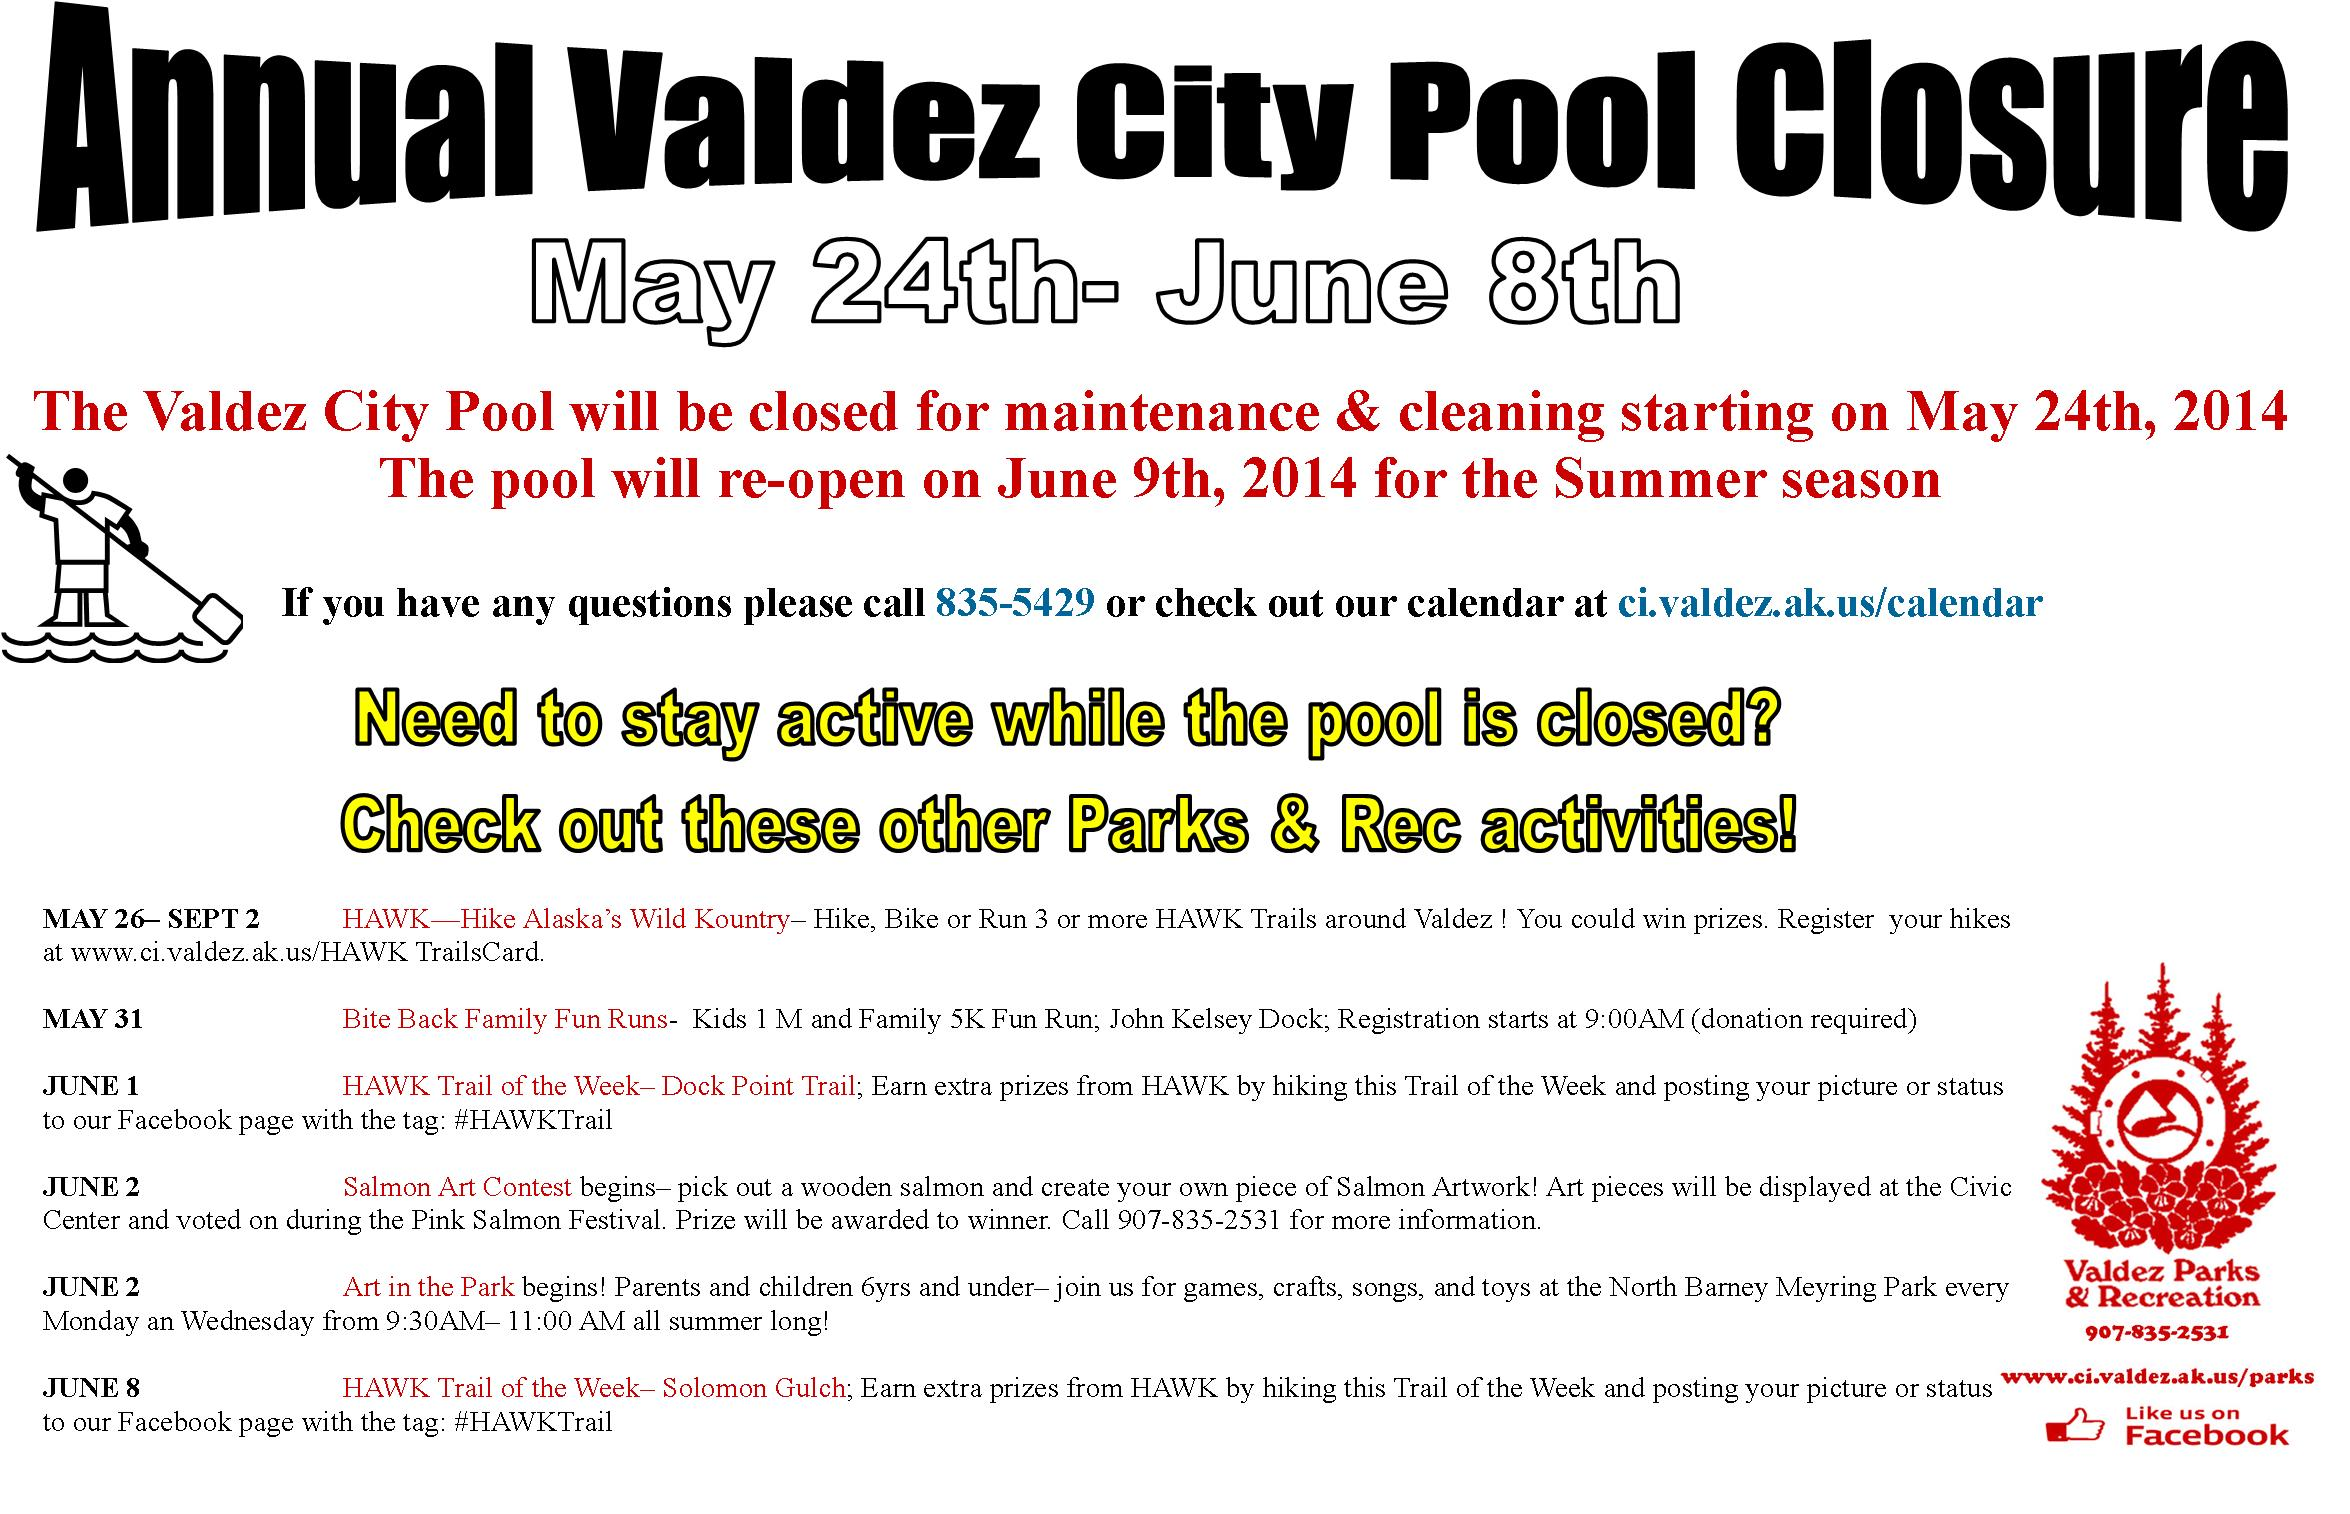 Pool Closure 2014.jpg